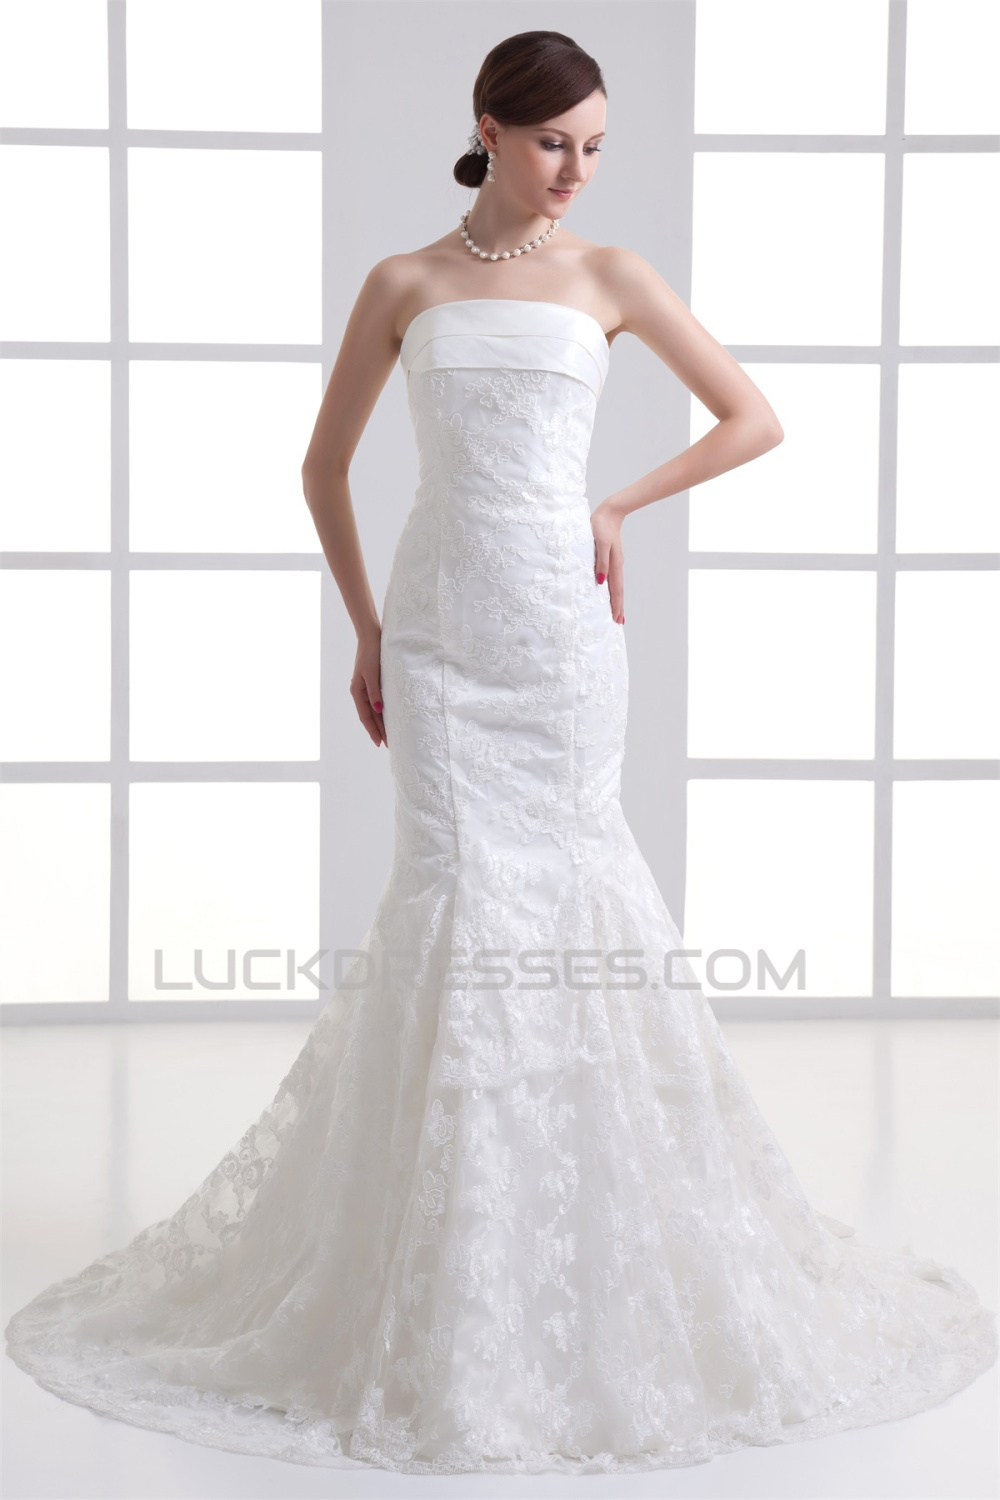 Satin Lace Mermaid Trumpet Sleeveless Strapless Wedding Dresses 2031277